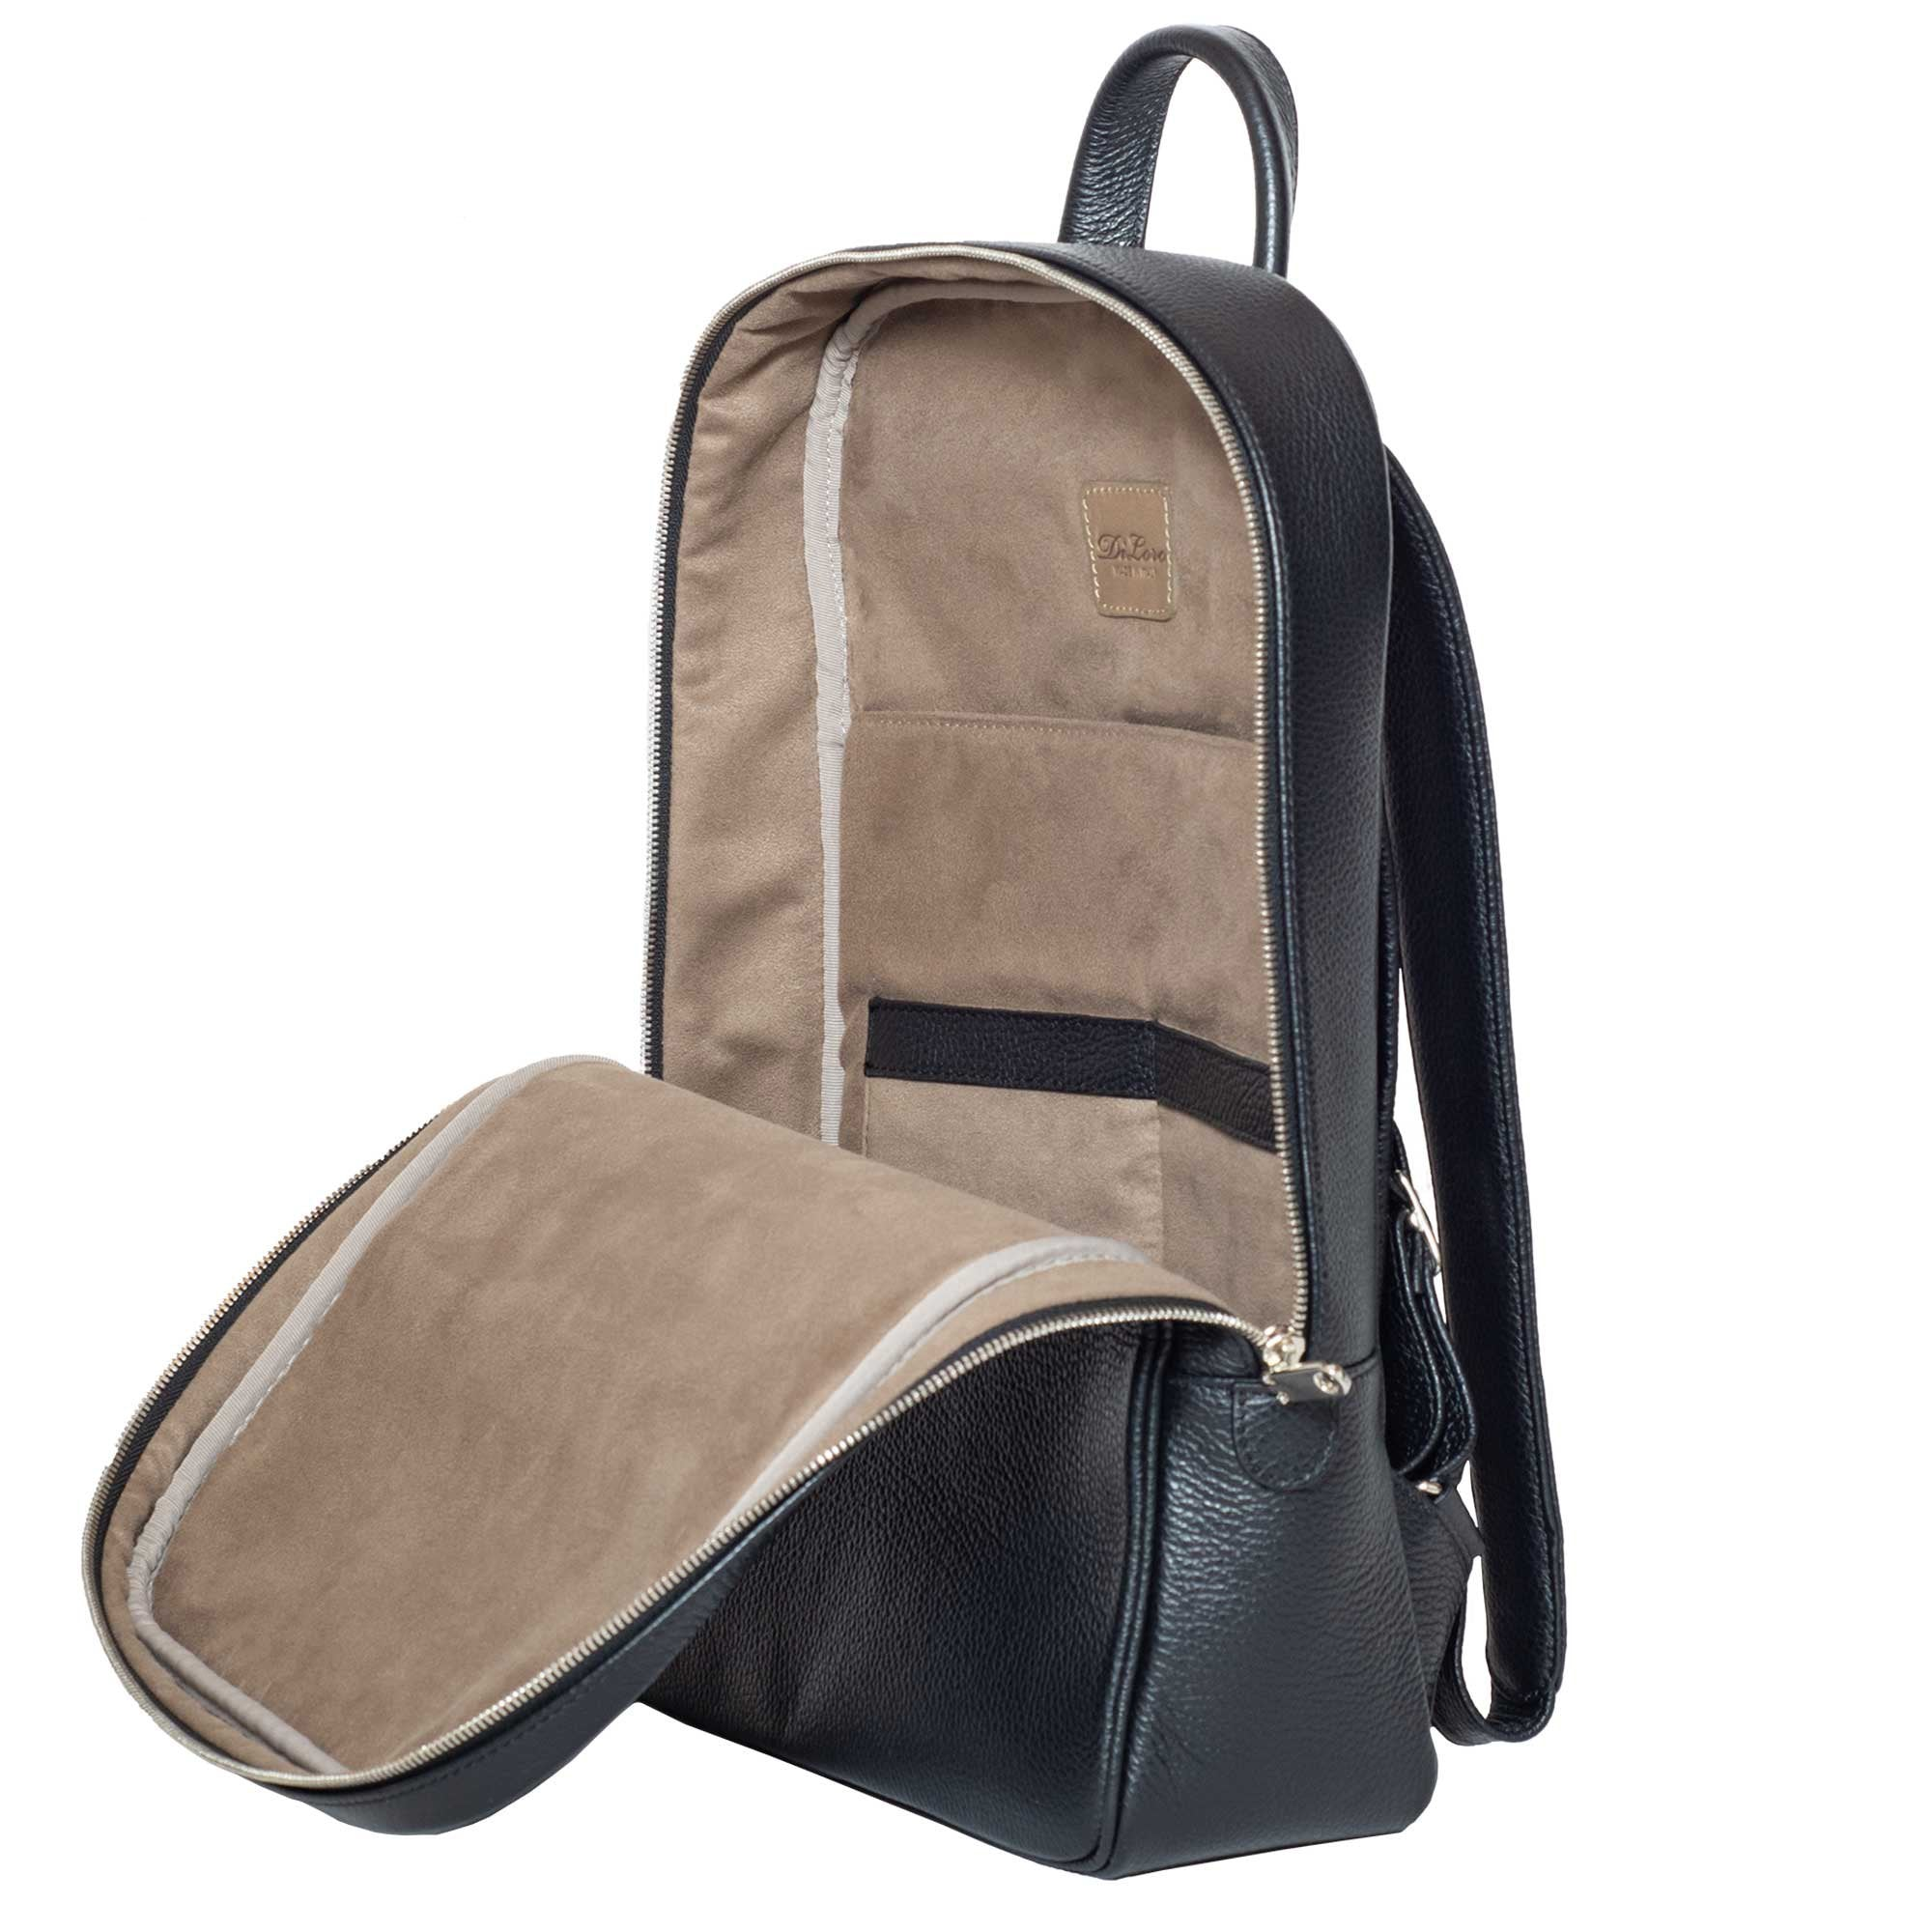 Backpack, Italian Leather Backpacks Black, Inside, Open View - Made in Italy for DiLoro Leather